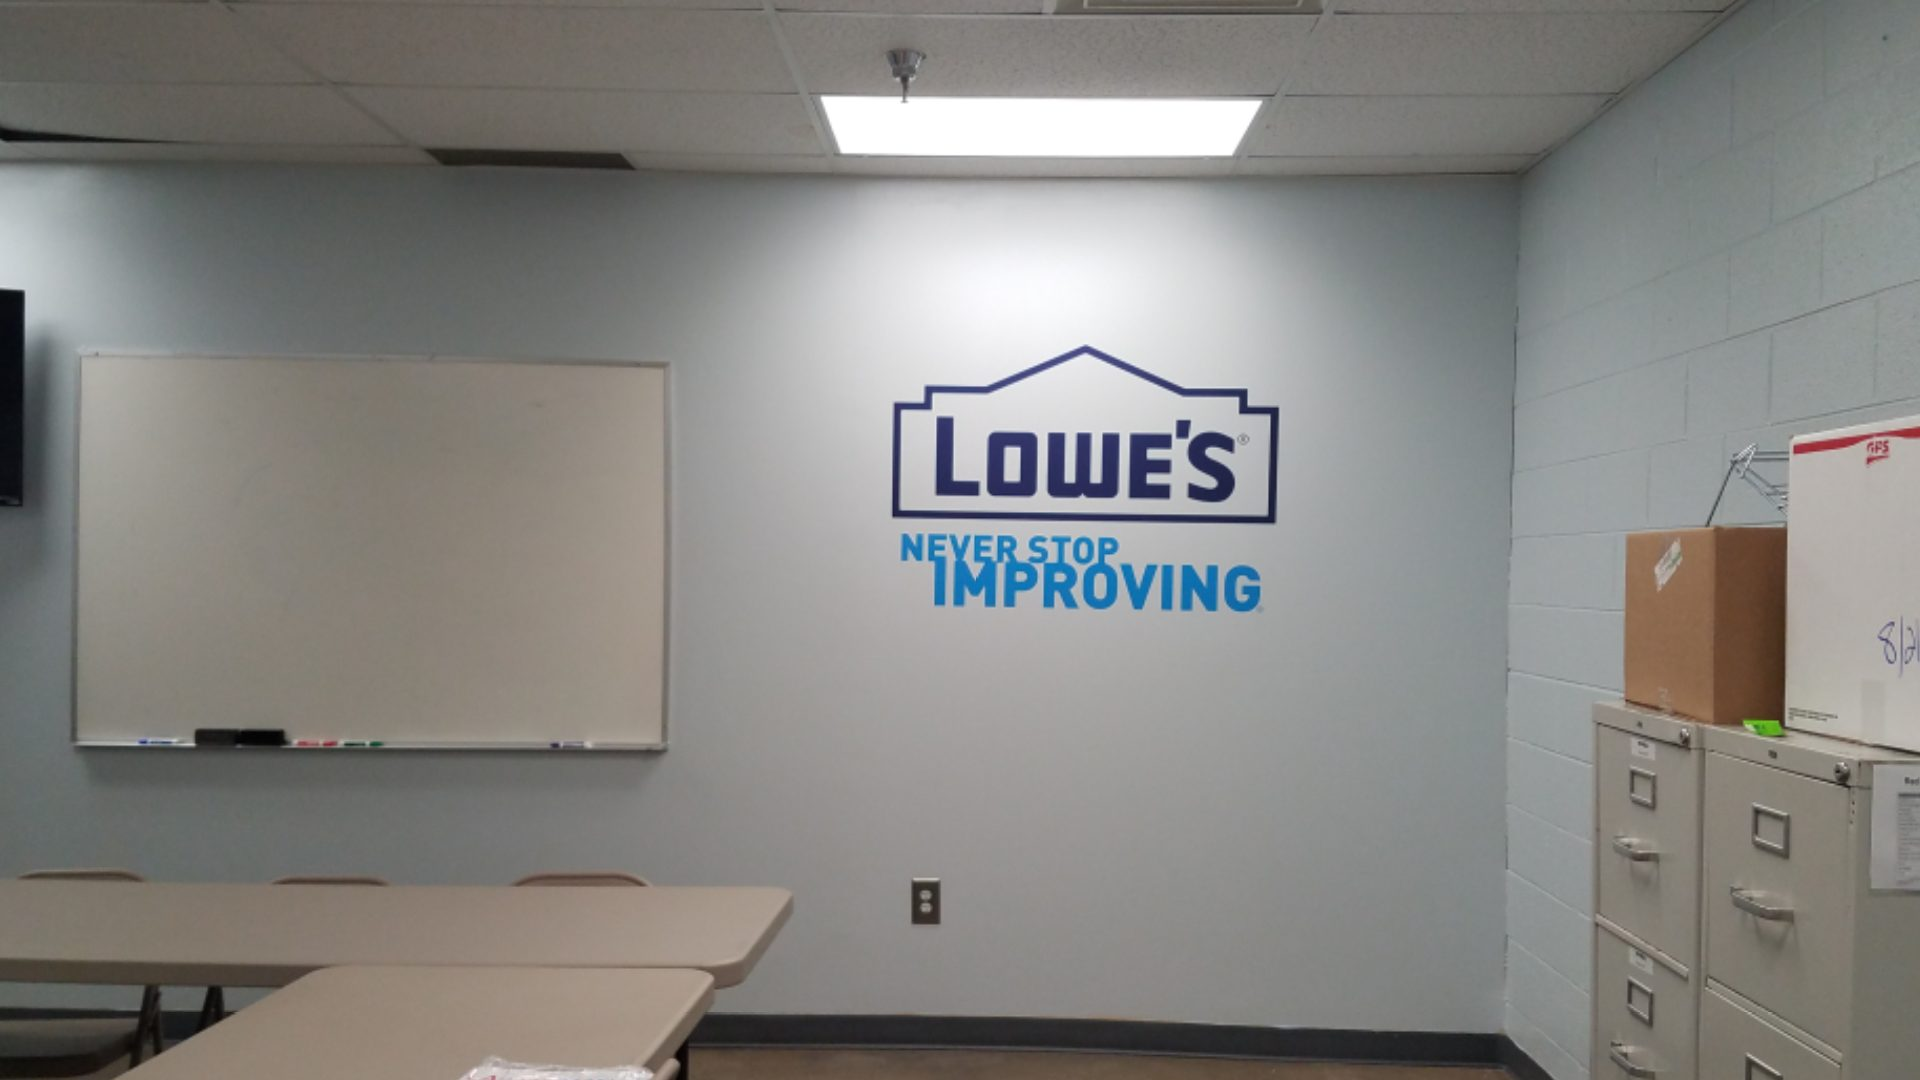 Lowes - Vinyl Wall Graphics (6)